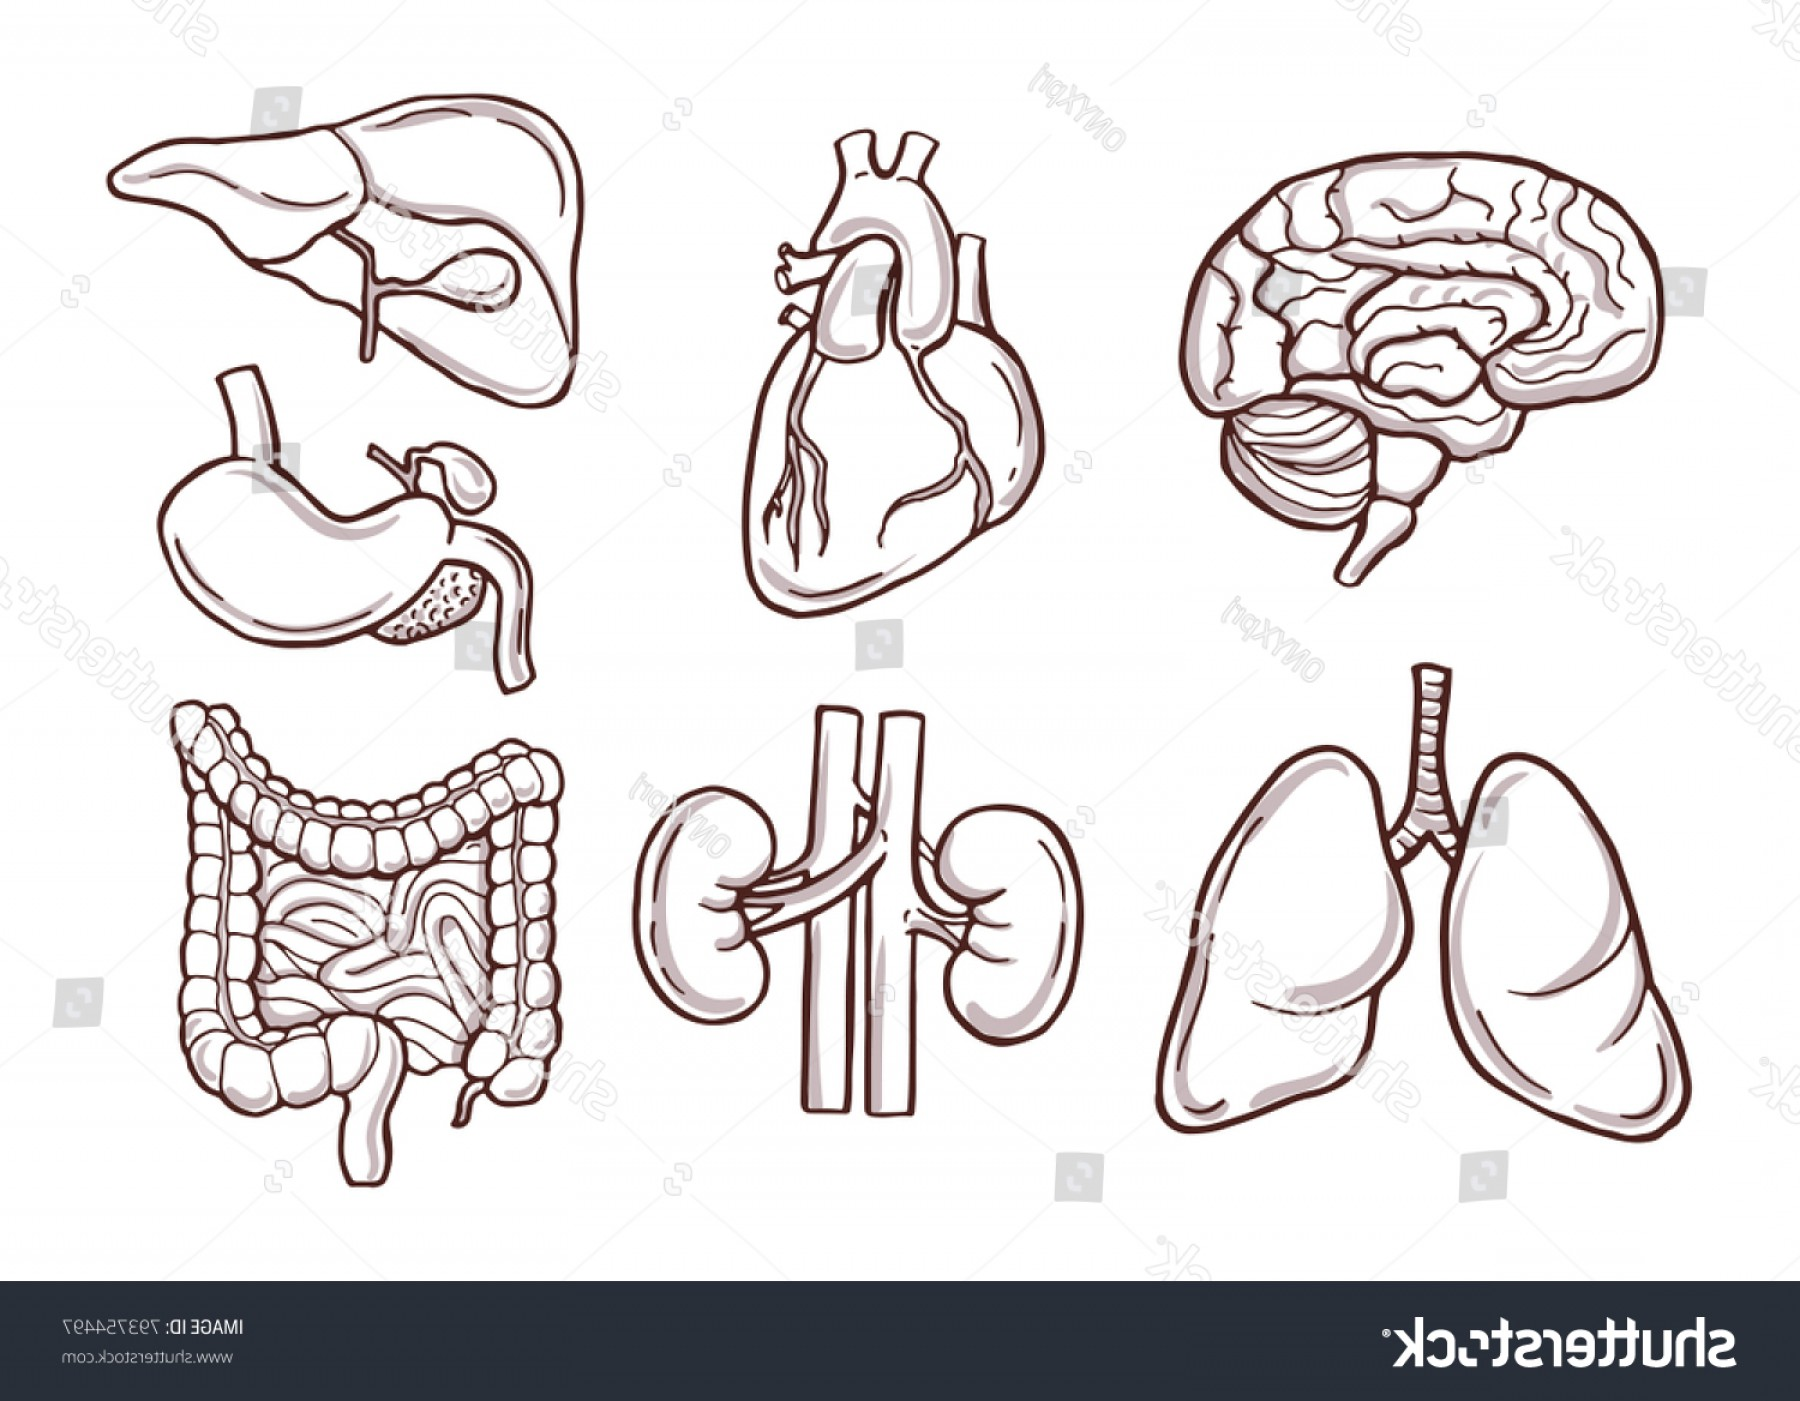 Vector Health Systems Inc: Hand Drawn Illustration Human Organs Medical